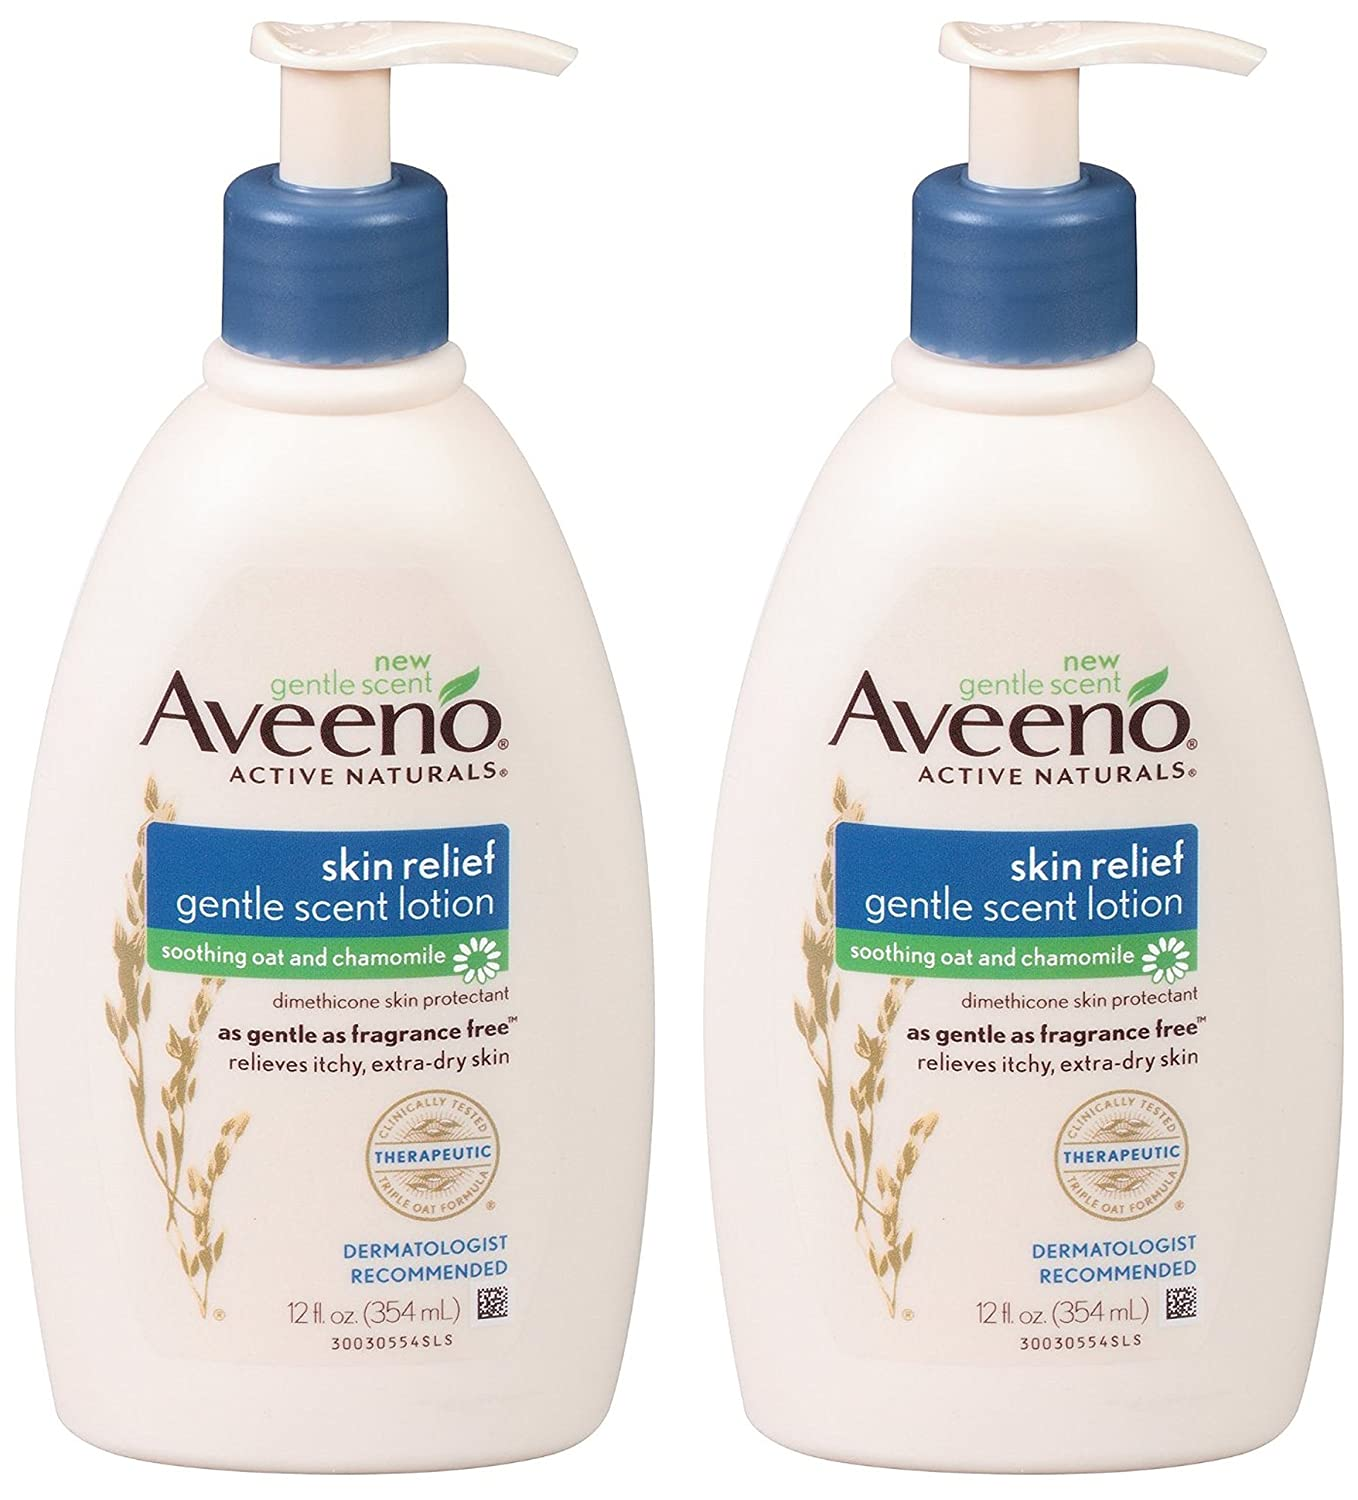 Aveeno Skin Relief Moisturizing Lotion with Chamomile Scent & Triple Oat Complex, Dimethicone Skin Protectant for Sensitive & Extra-Dry Itchy Skin, 12 fl. oz (Pack of 2)